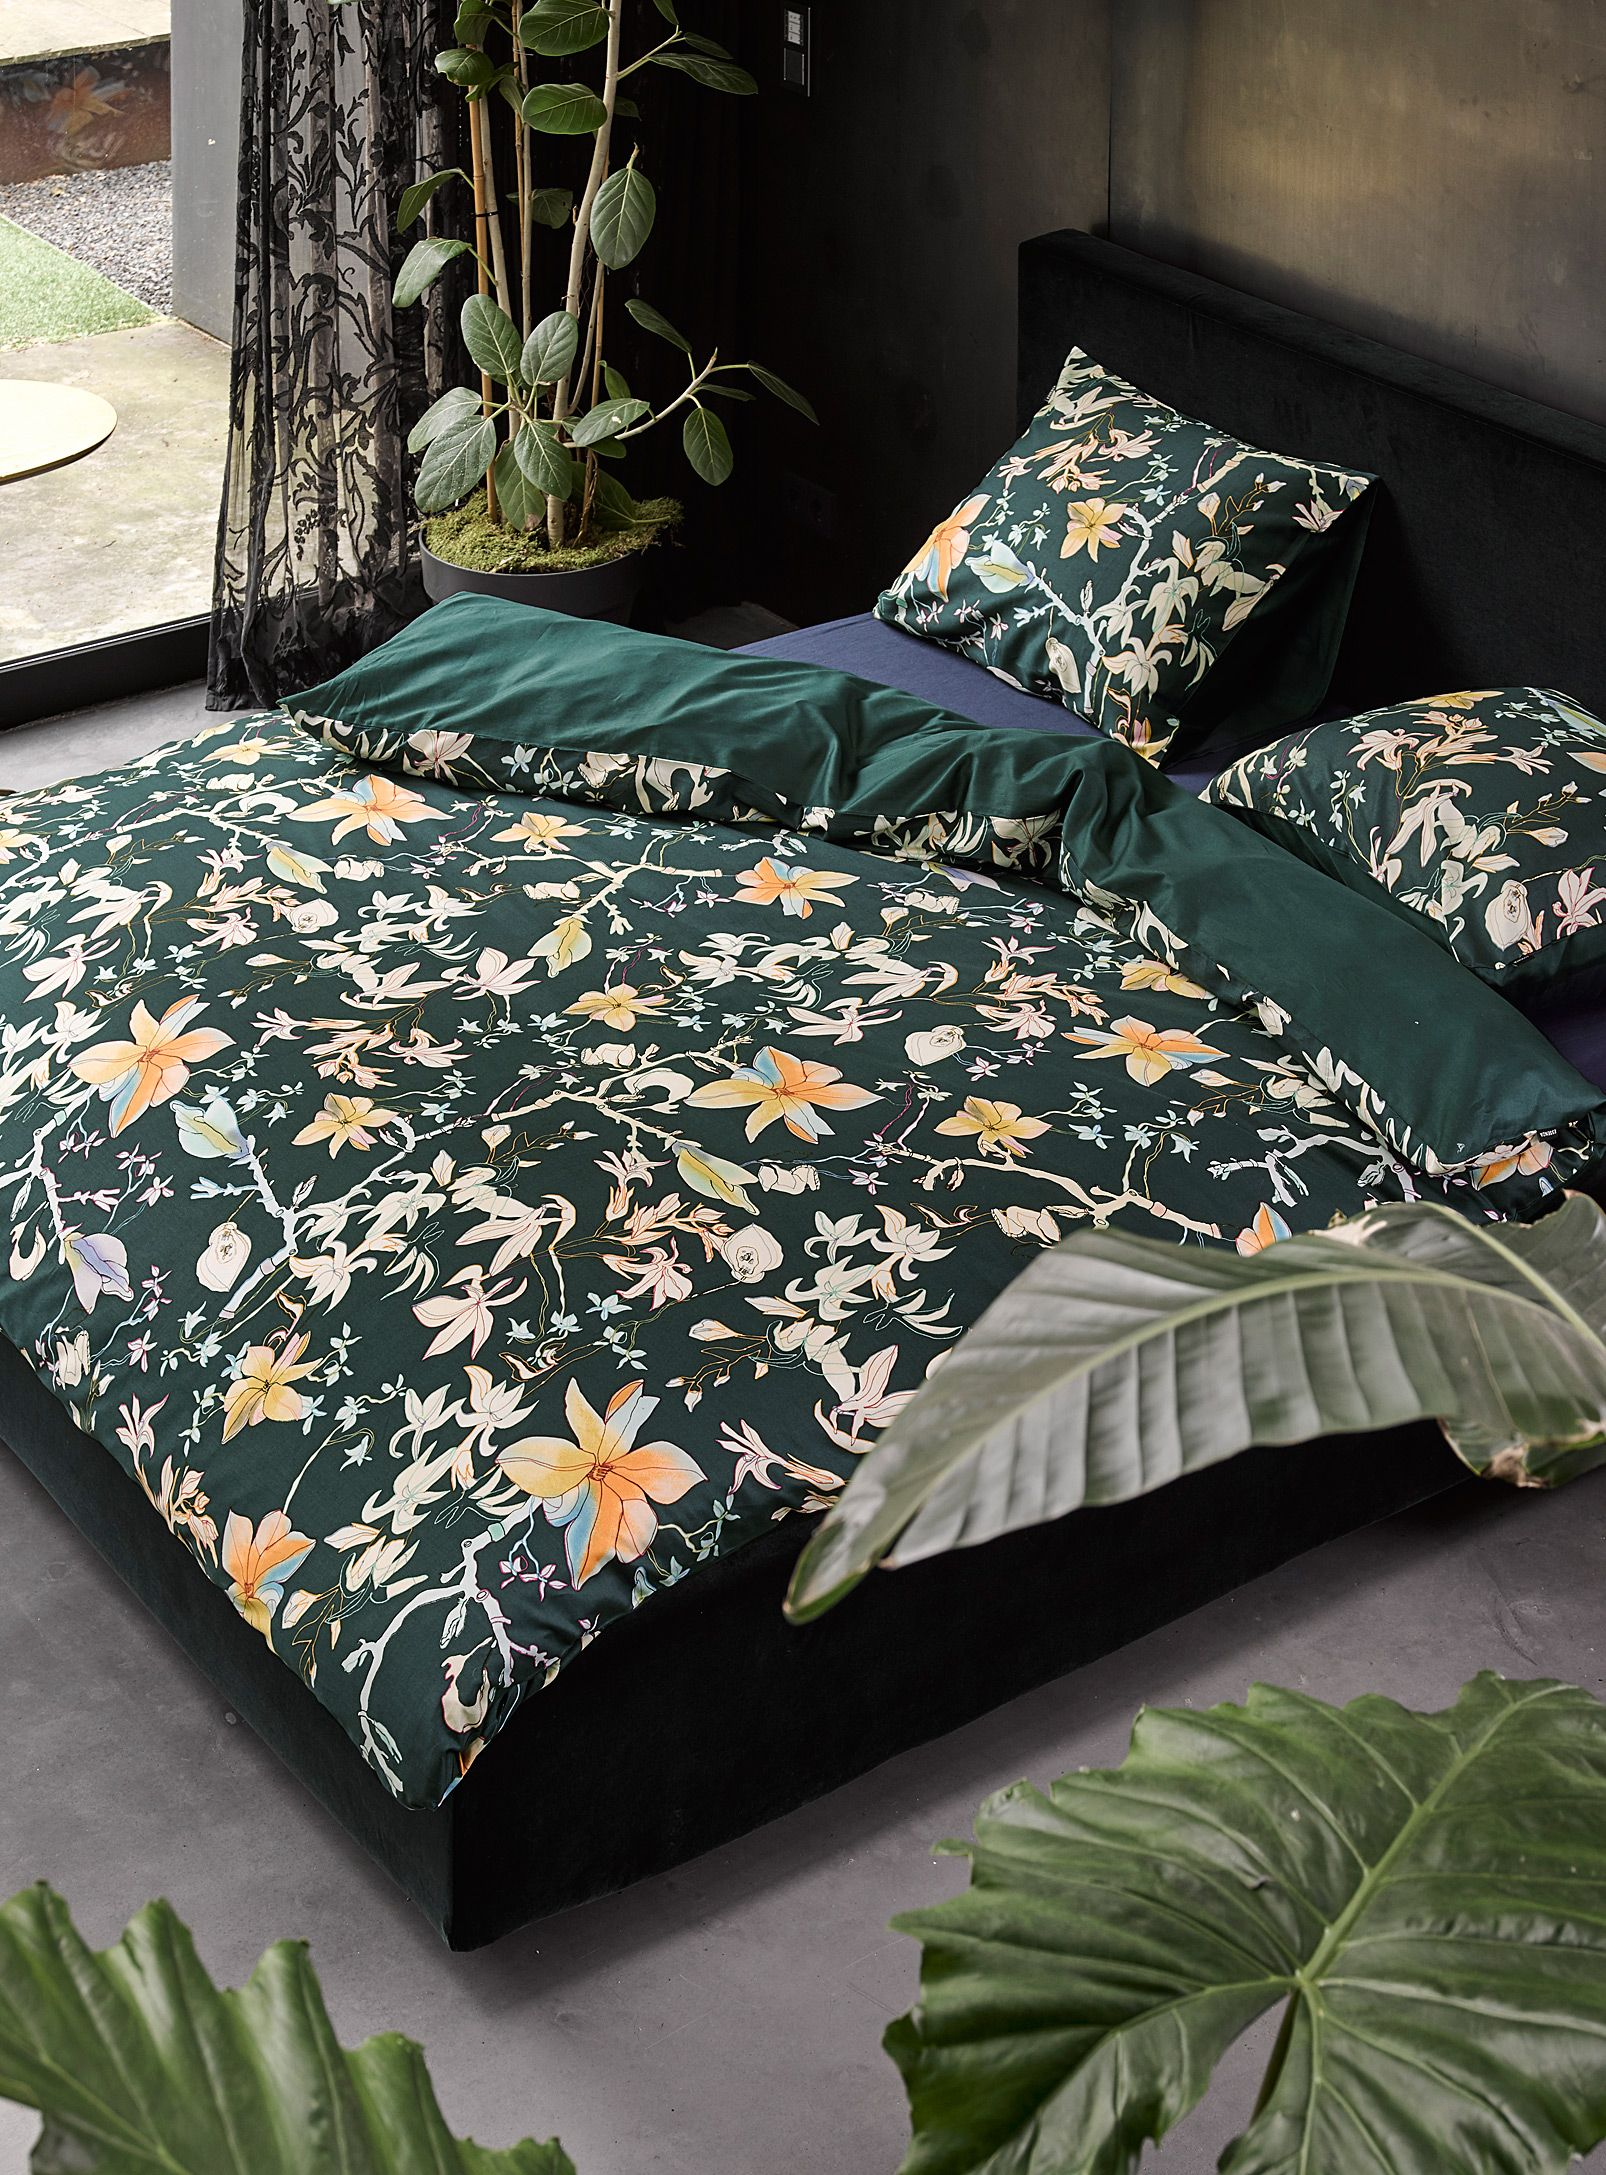 Festive bouquet duvet cover set Essenza Shop Duvet